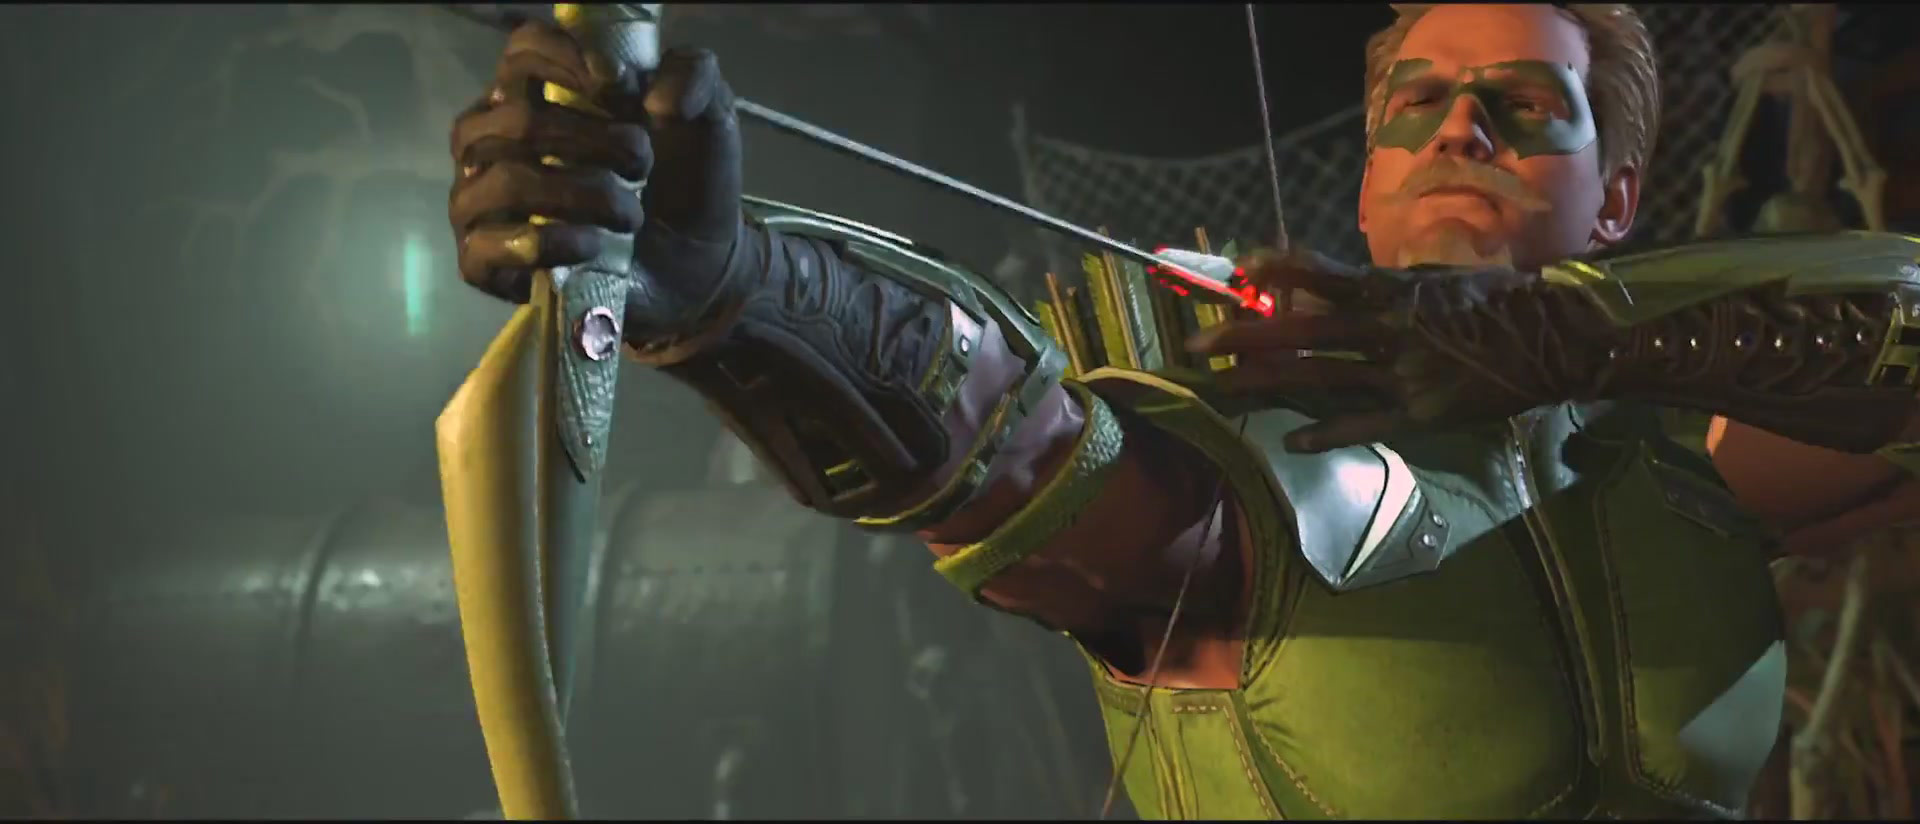 Image currently unavailable. Go to www.hack.generatorgame.com and choose Injustice 2 image, you will be redirect to Injustice 2 Generator site.